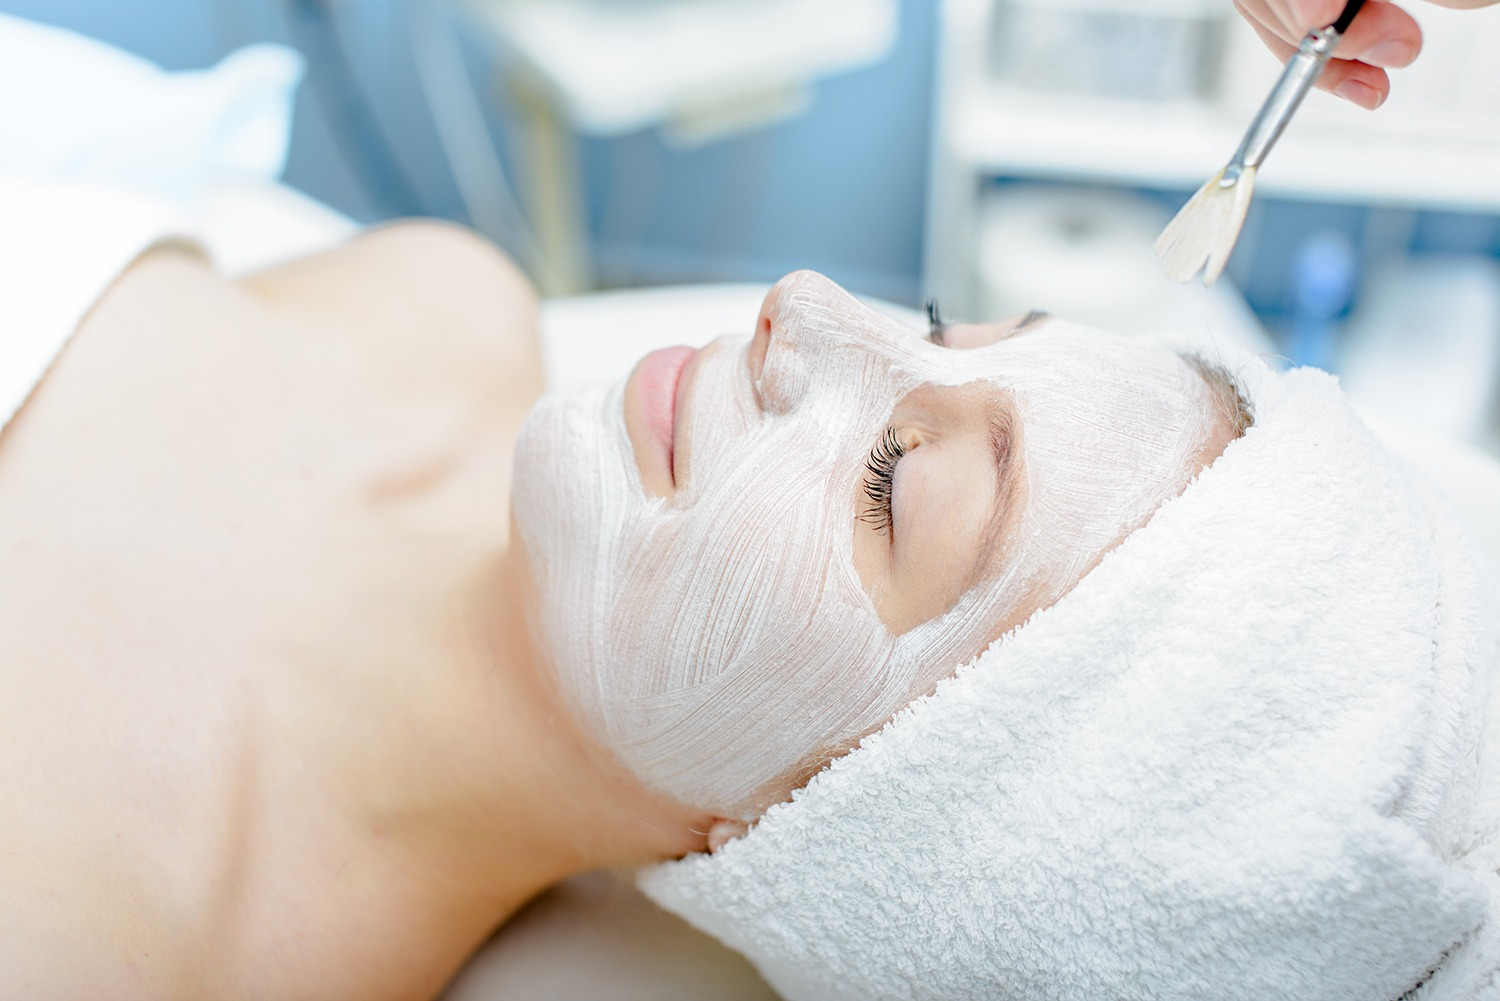 Woman lay down with her eyes closed while being given a facial skin care treatment. For the use on the Facials Course Page.